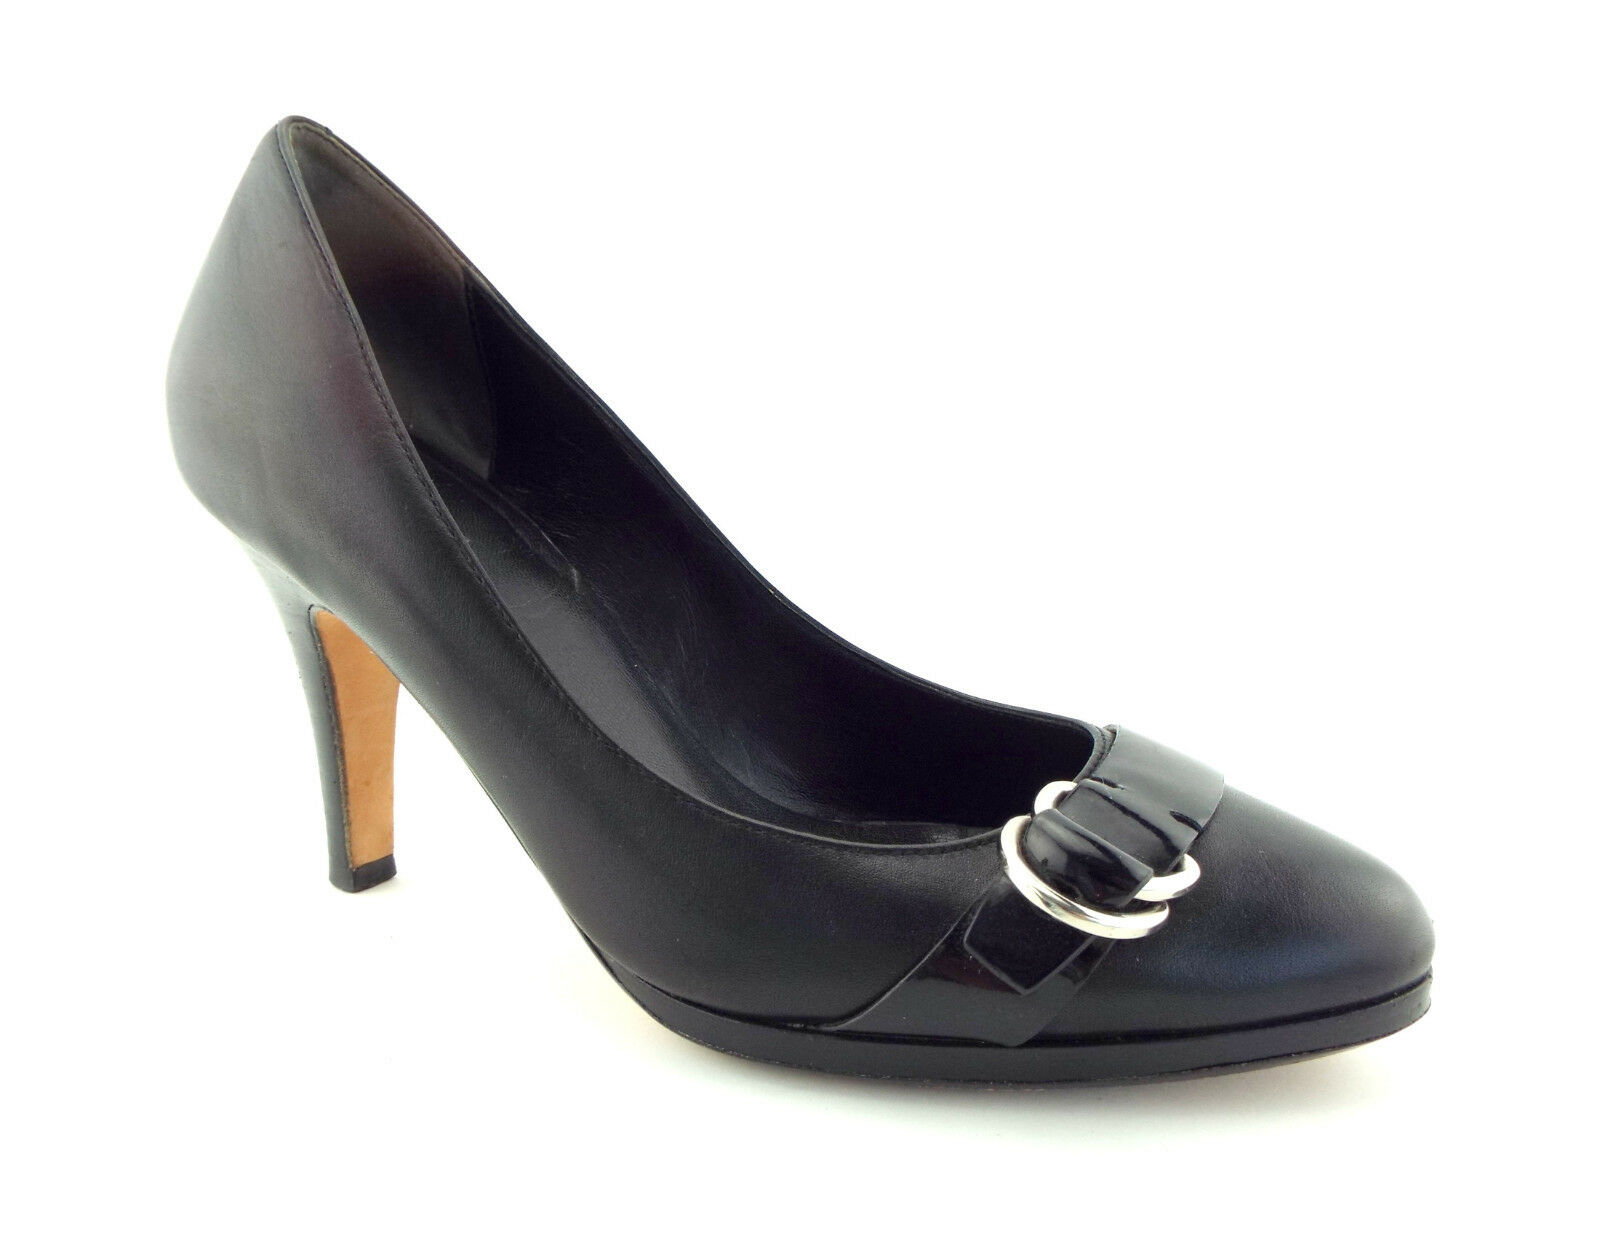 COLE HAAN Size 8.5 Black Leather Almond Toe Air Pumps Heels Shoes 8 1/2